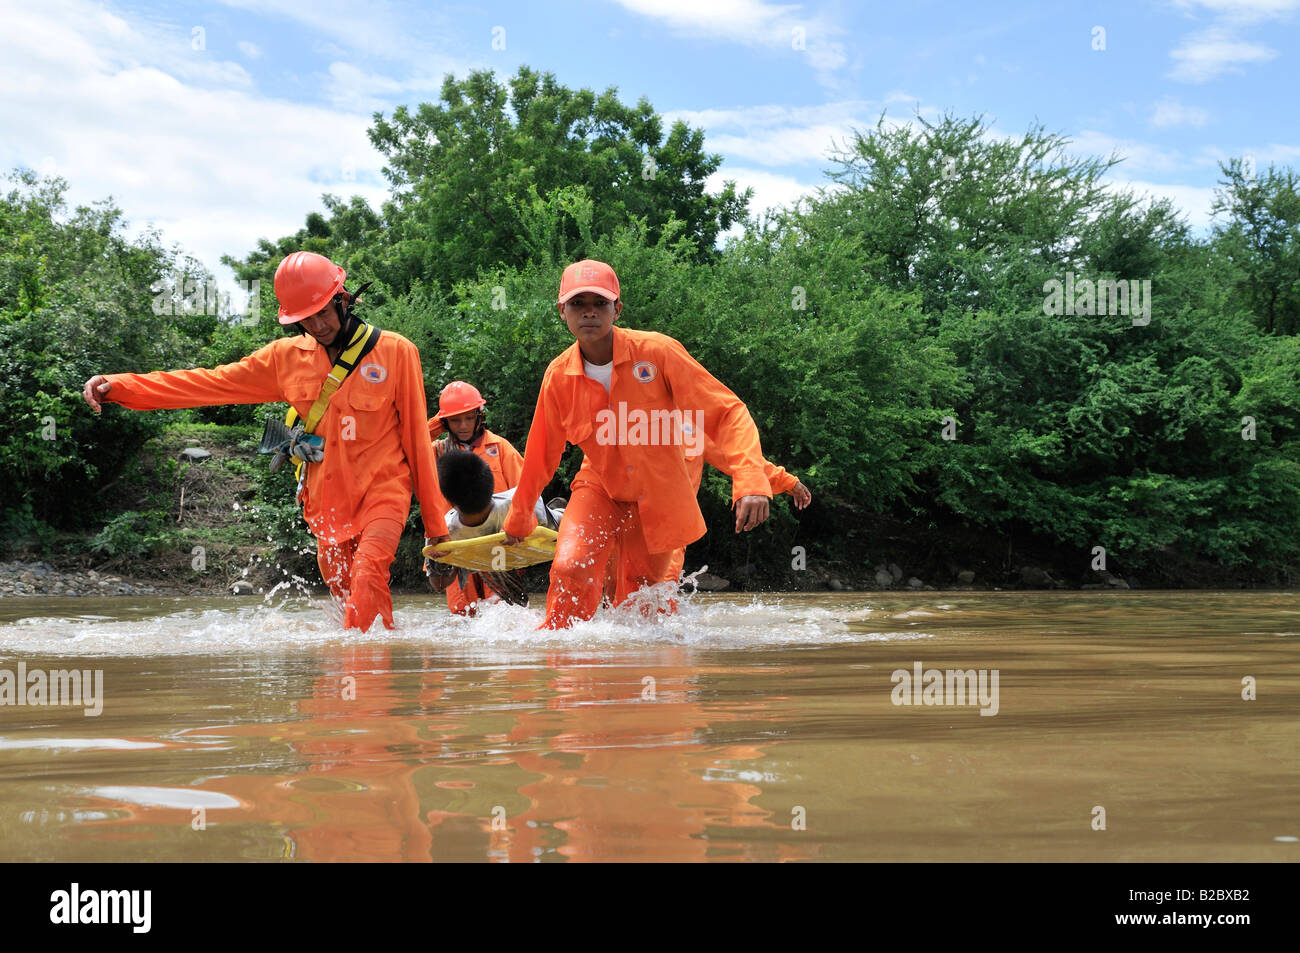 Disaster prevention training in a hurricane area, evacuation of an injured person, Somotillo, Chinandega, Nicaragua - Stock Image